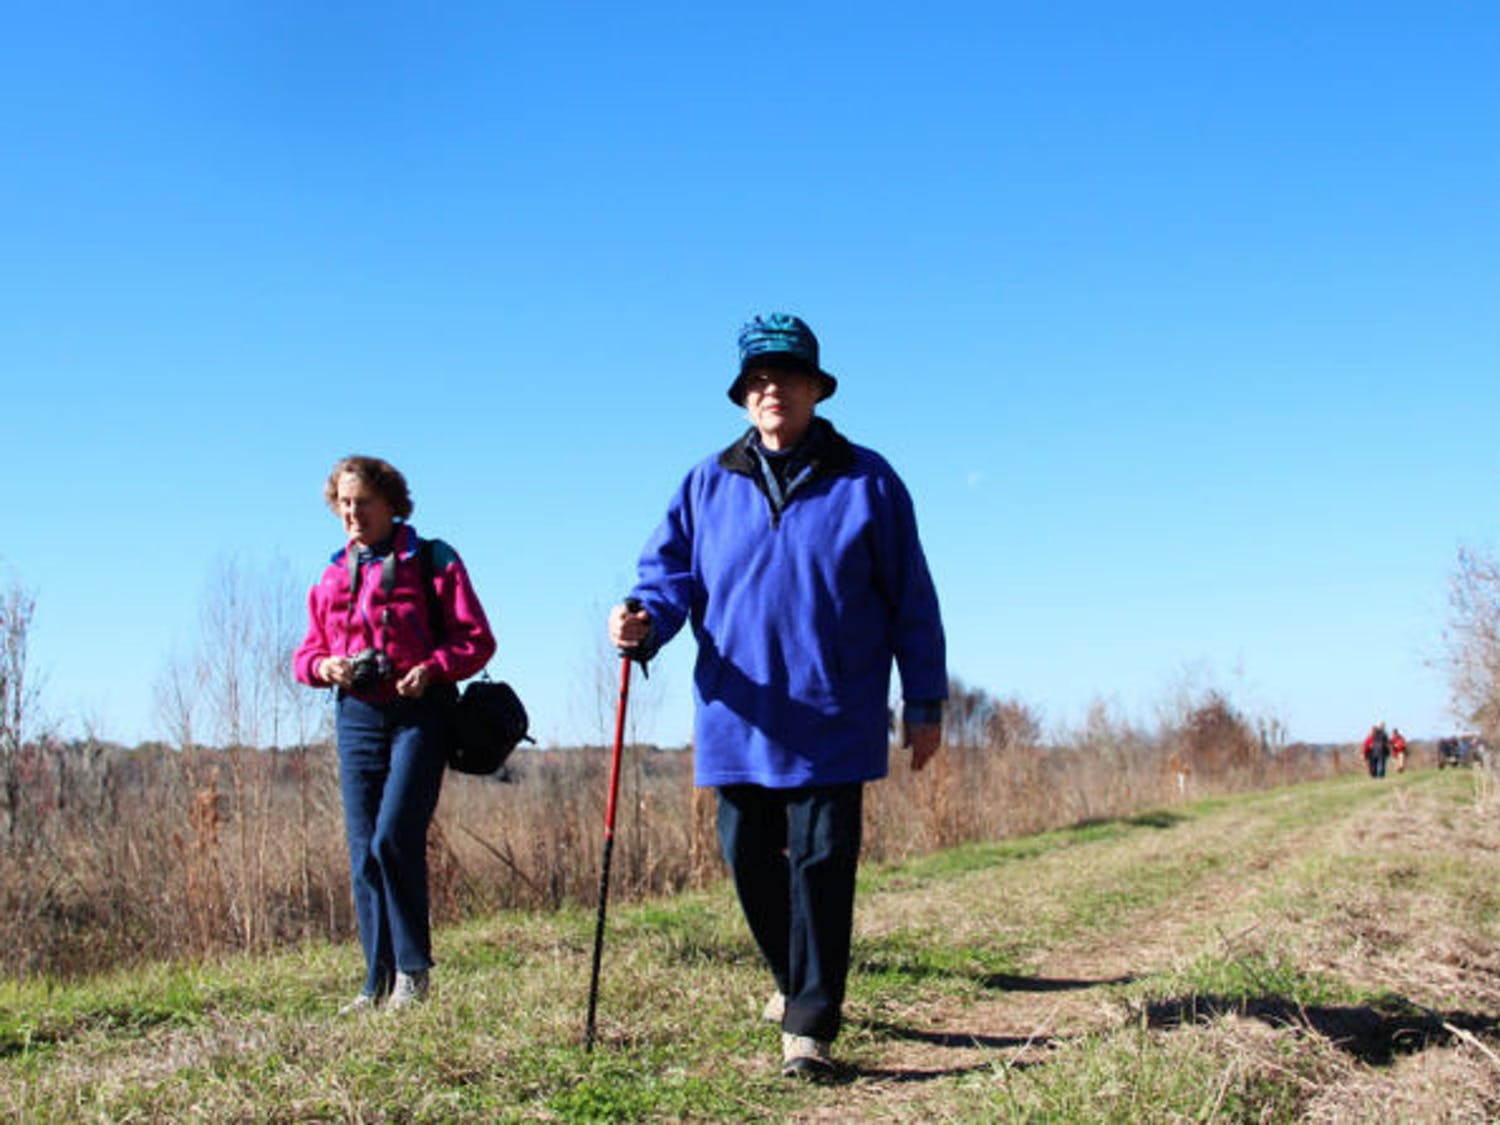 Gainesville resident Mary Horn (right) explores the newly opened Barr Hammock Preserve with Emily Hoon, an Alachua County resident, at the opening celebration Saturday morning. The pair walked along the 6.5-mile Levy Loop hiking trail, which circles around restored marsh.